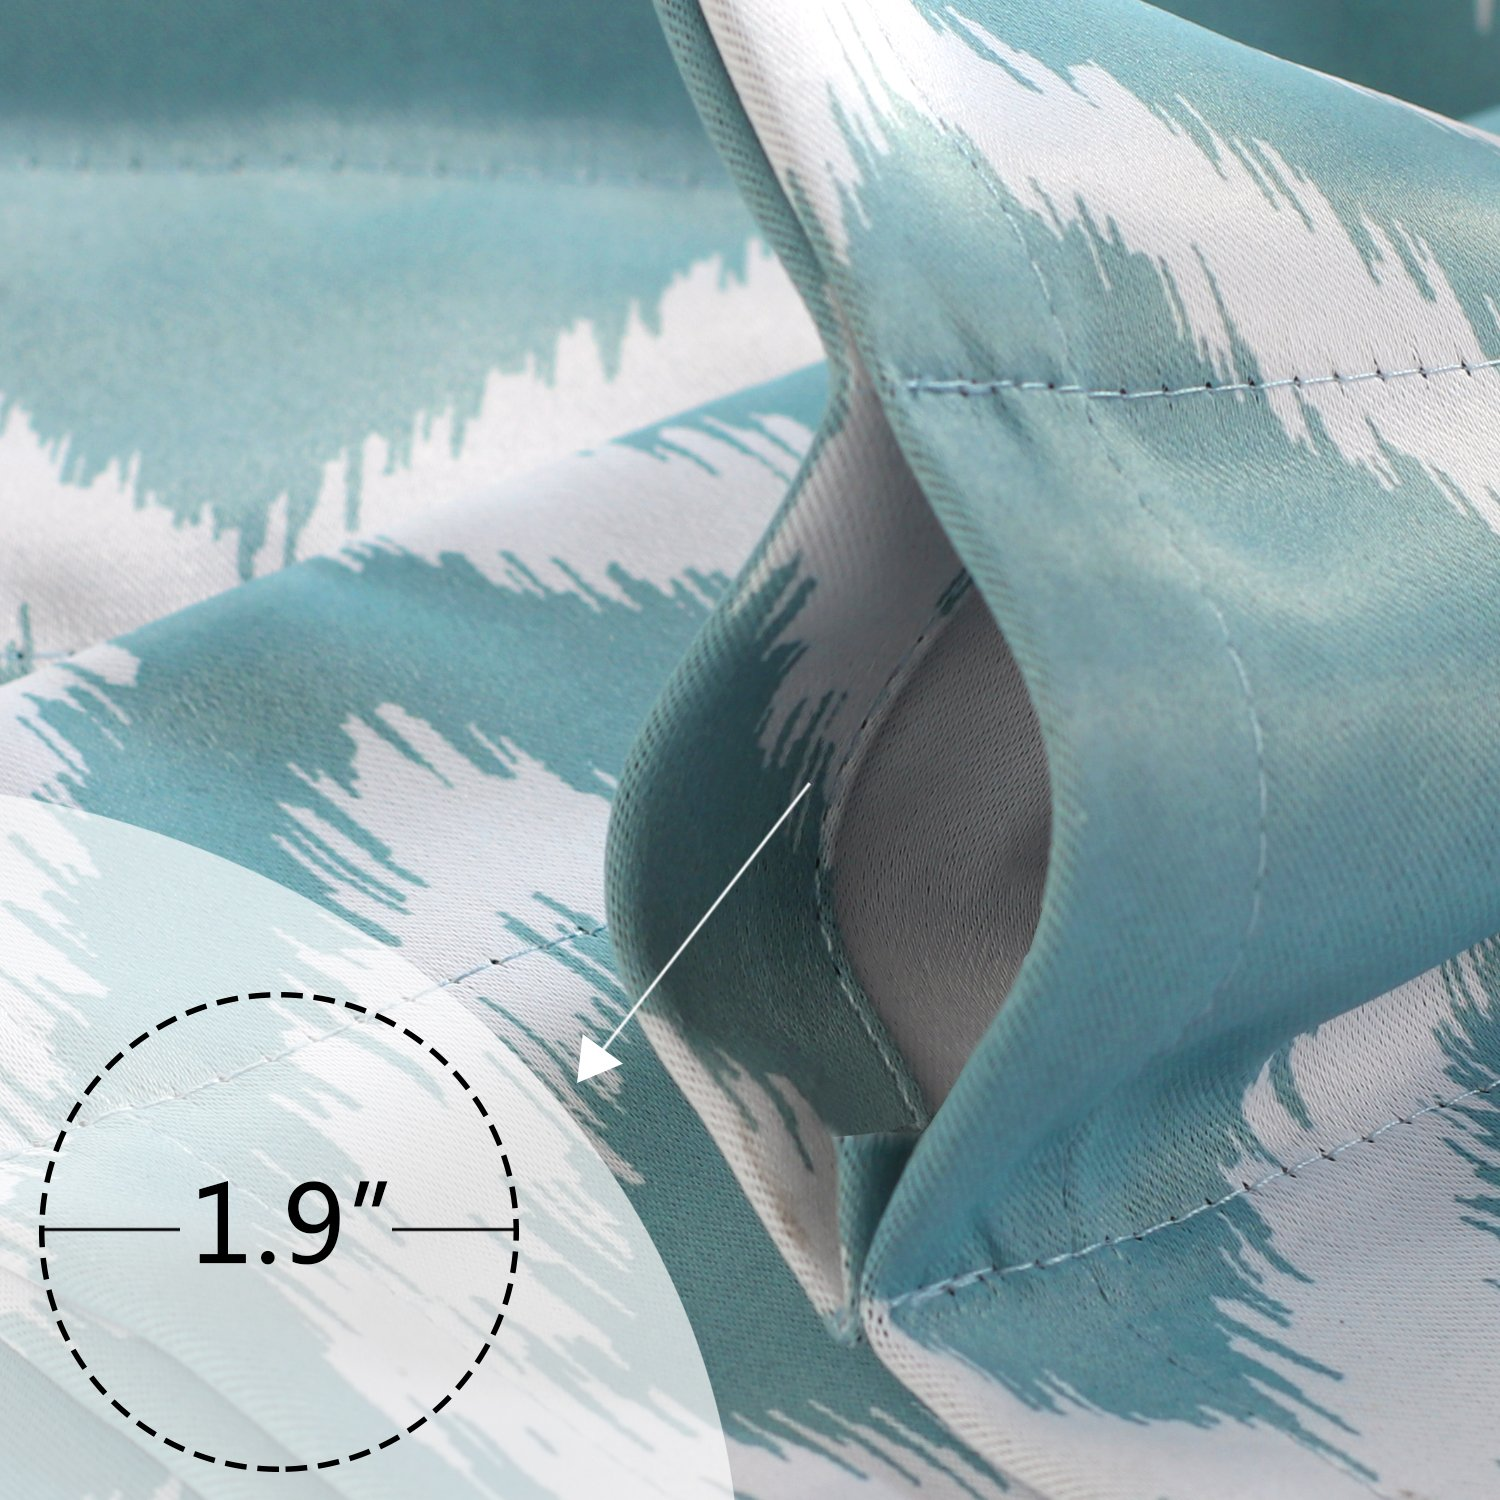 52 x 63 Full Blackout Thermal Insulated Curtain Panels Thermal Insulated Energy Saving Window Curtain Navy Star Curtains for Boys Room Grommet Star Curtains for Kids Room 2 Panels Flamingo P Inch